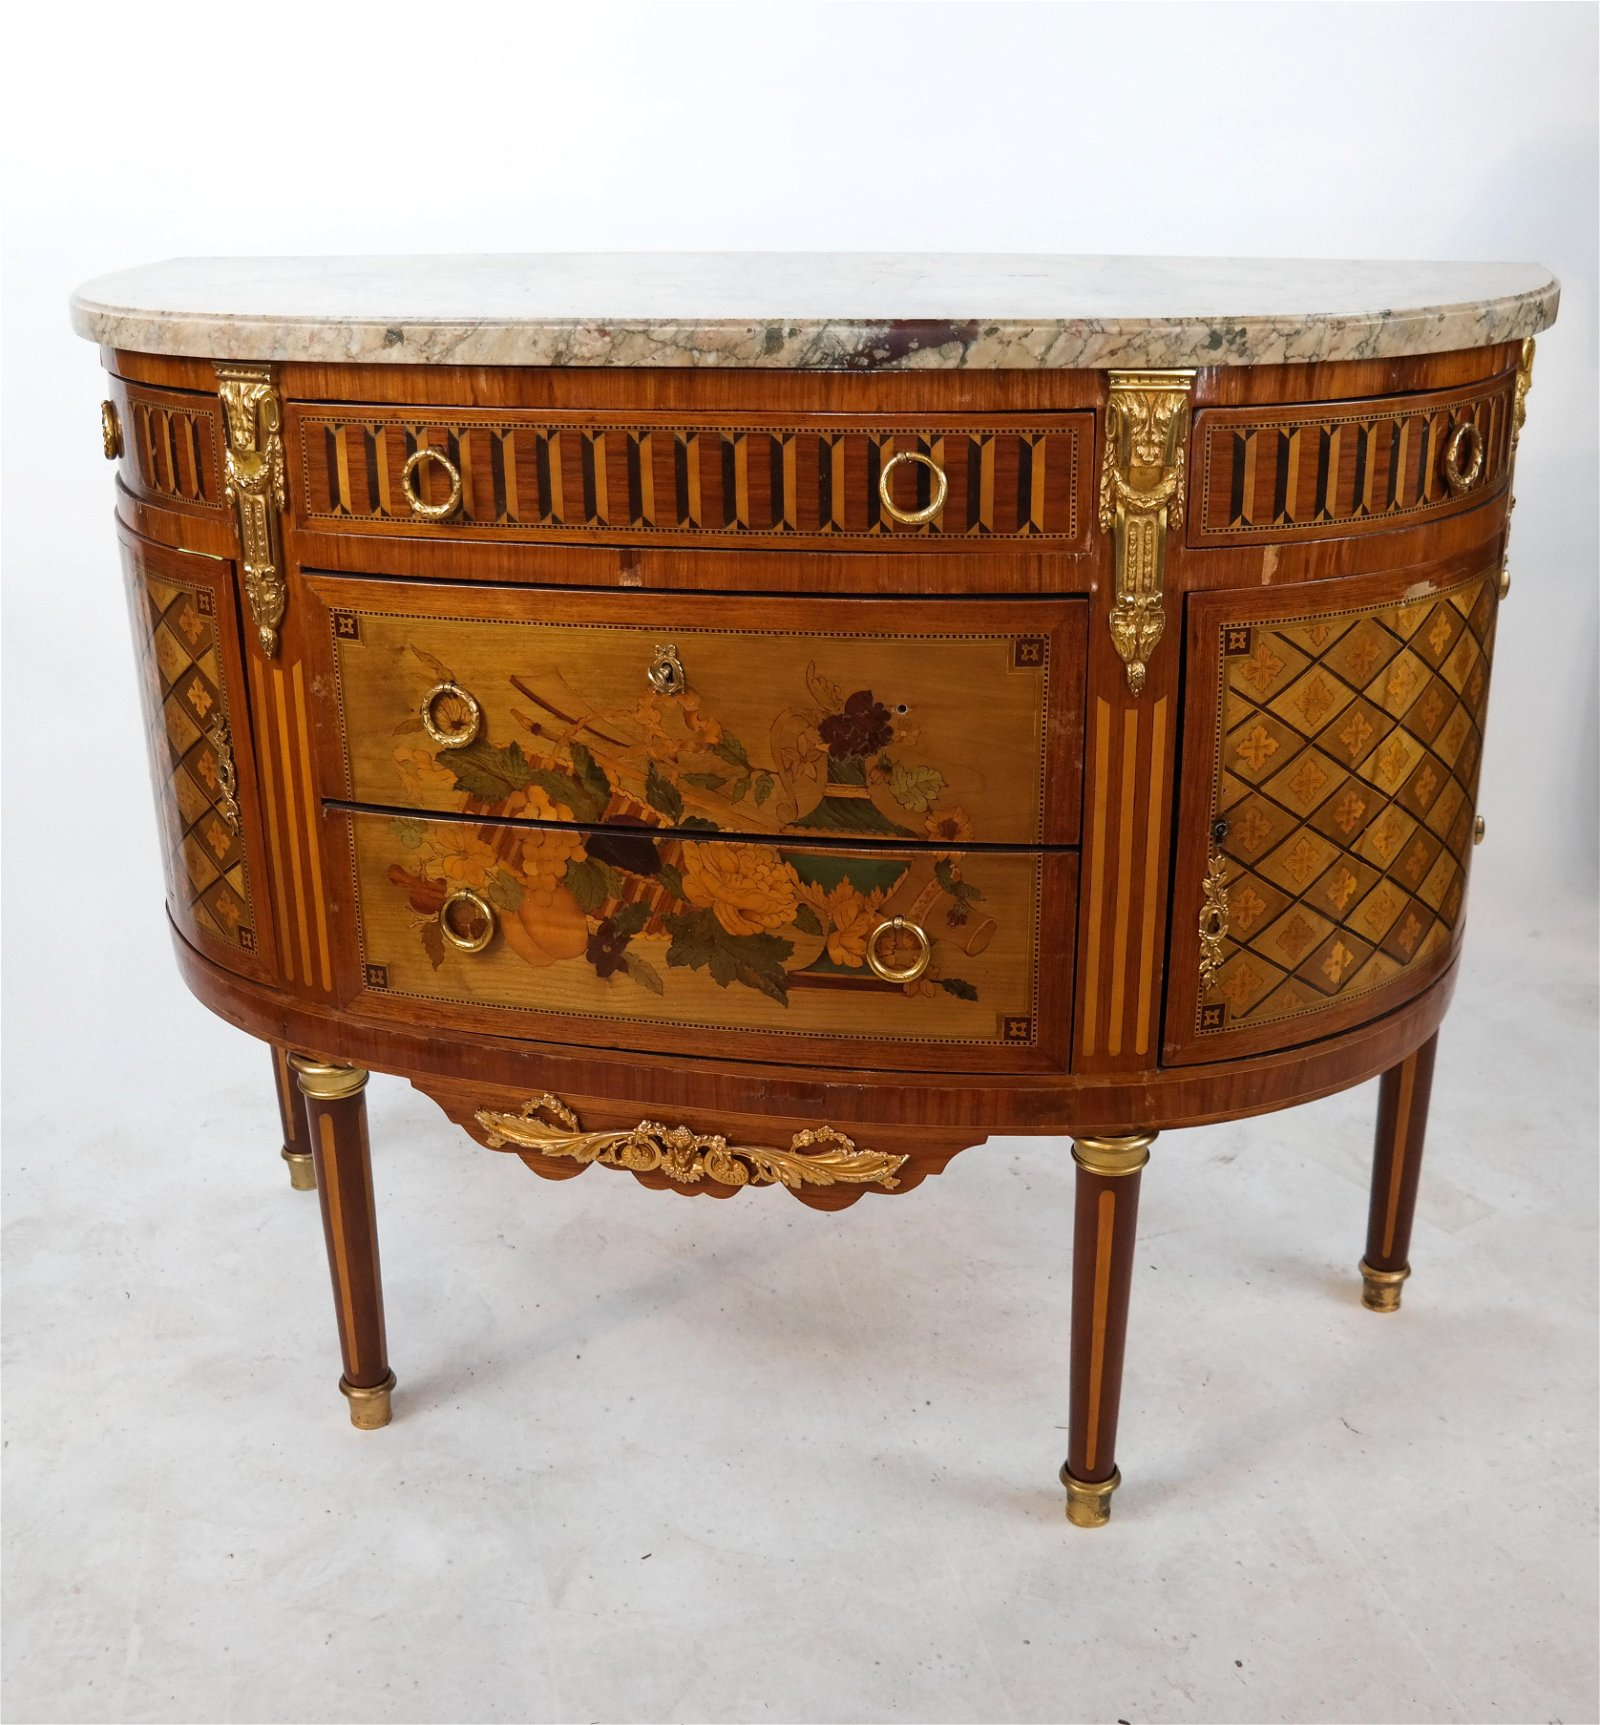 19th C. French Inlaid Commode